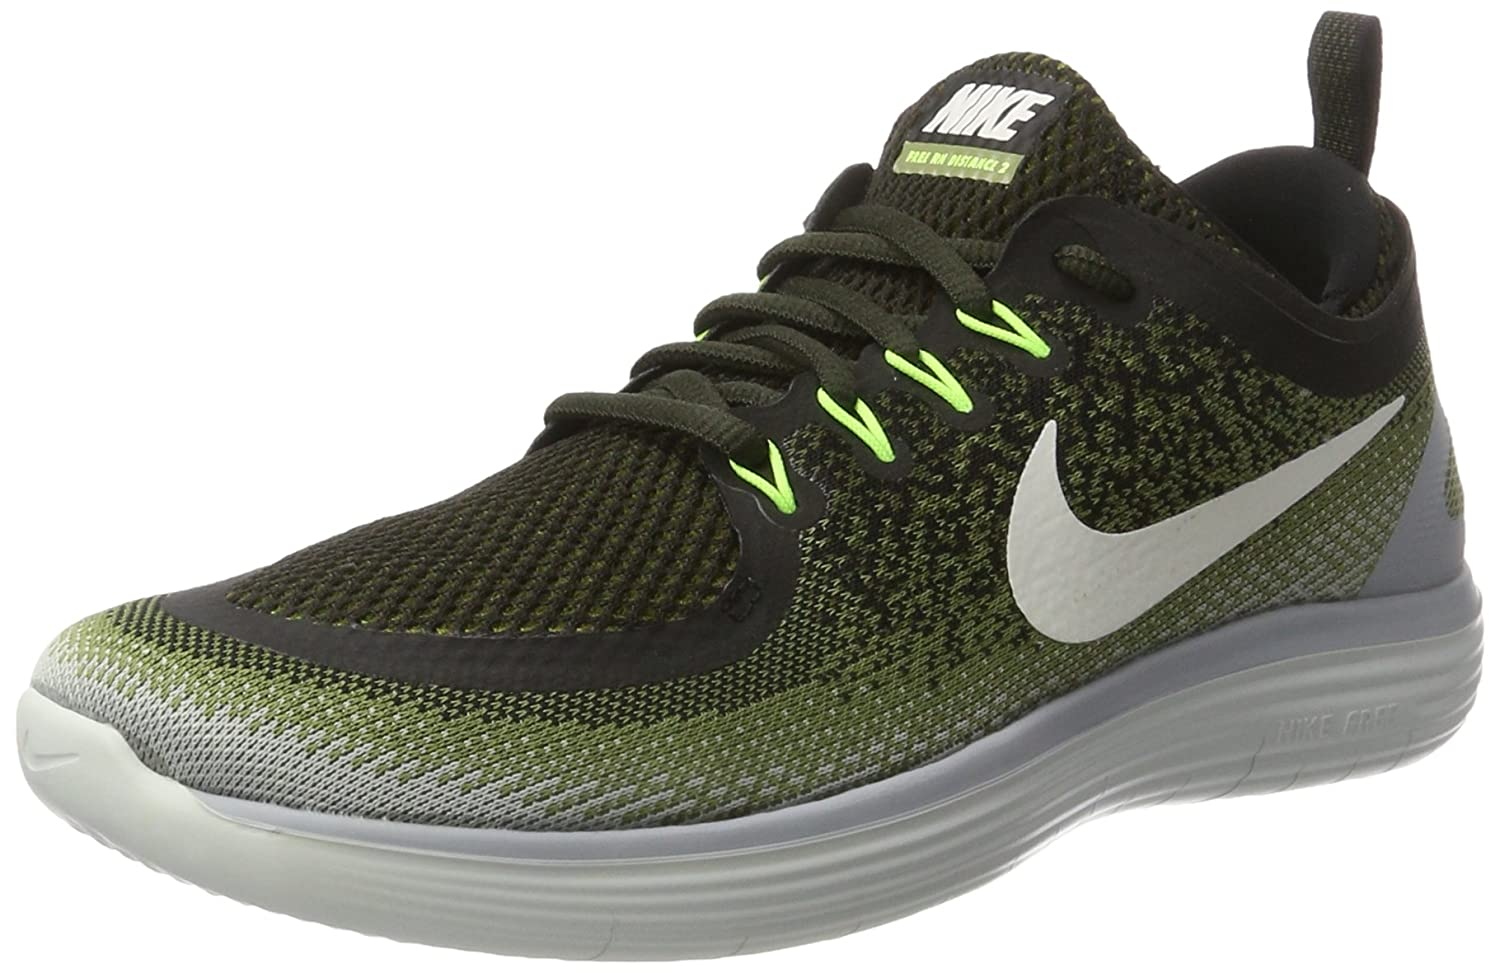 Nike Herren 863775 Sneakers  42.5 EU|Mehrfarbig (Legion Green / White / Palm Green / Black)